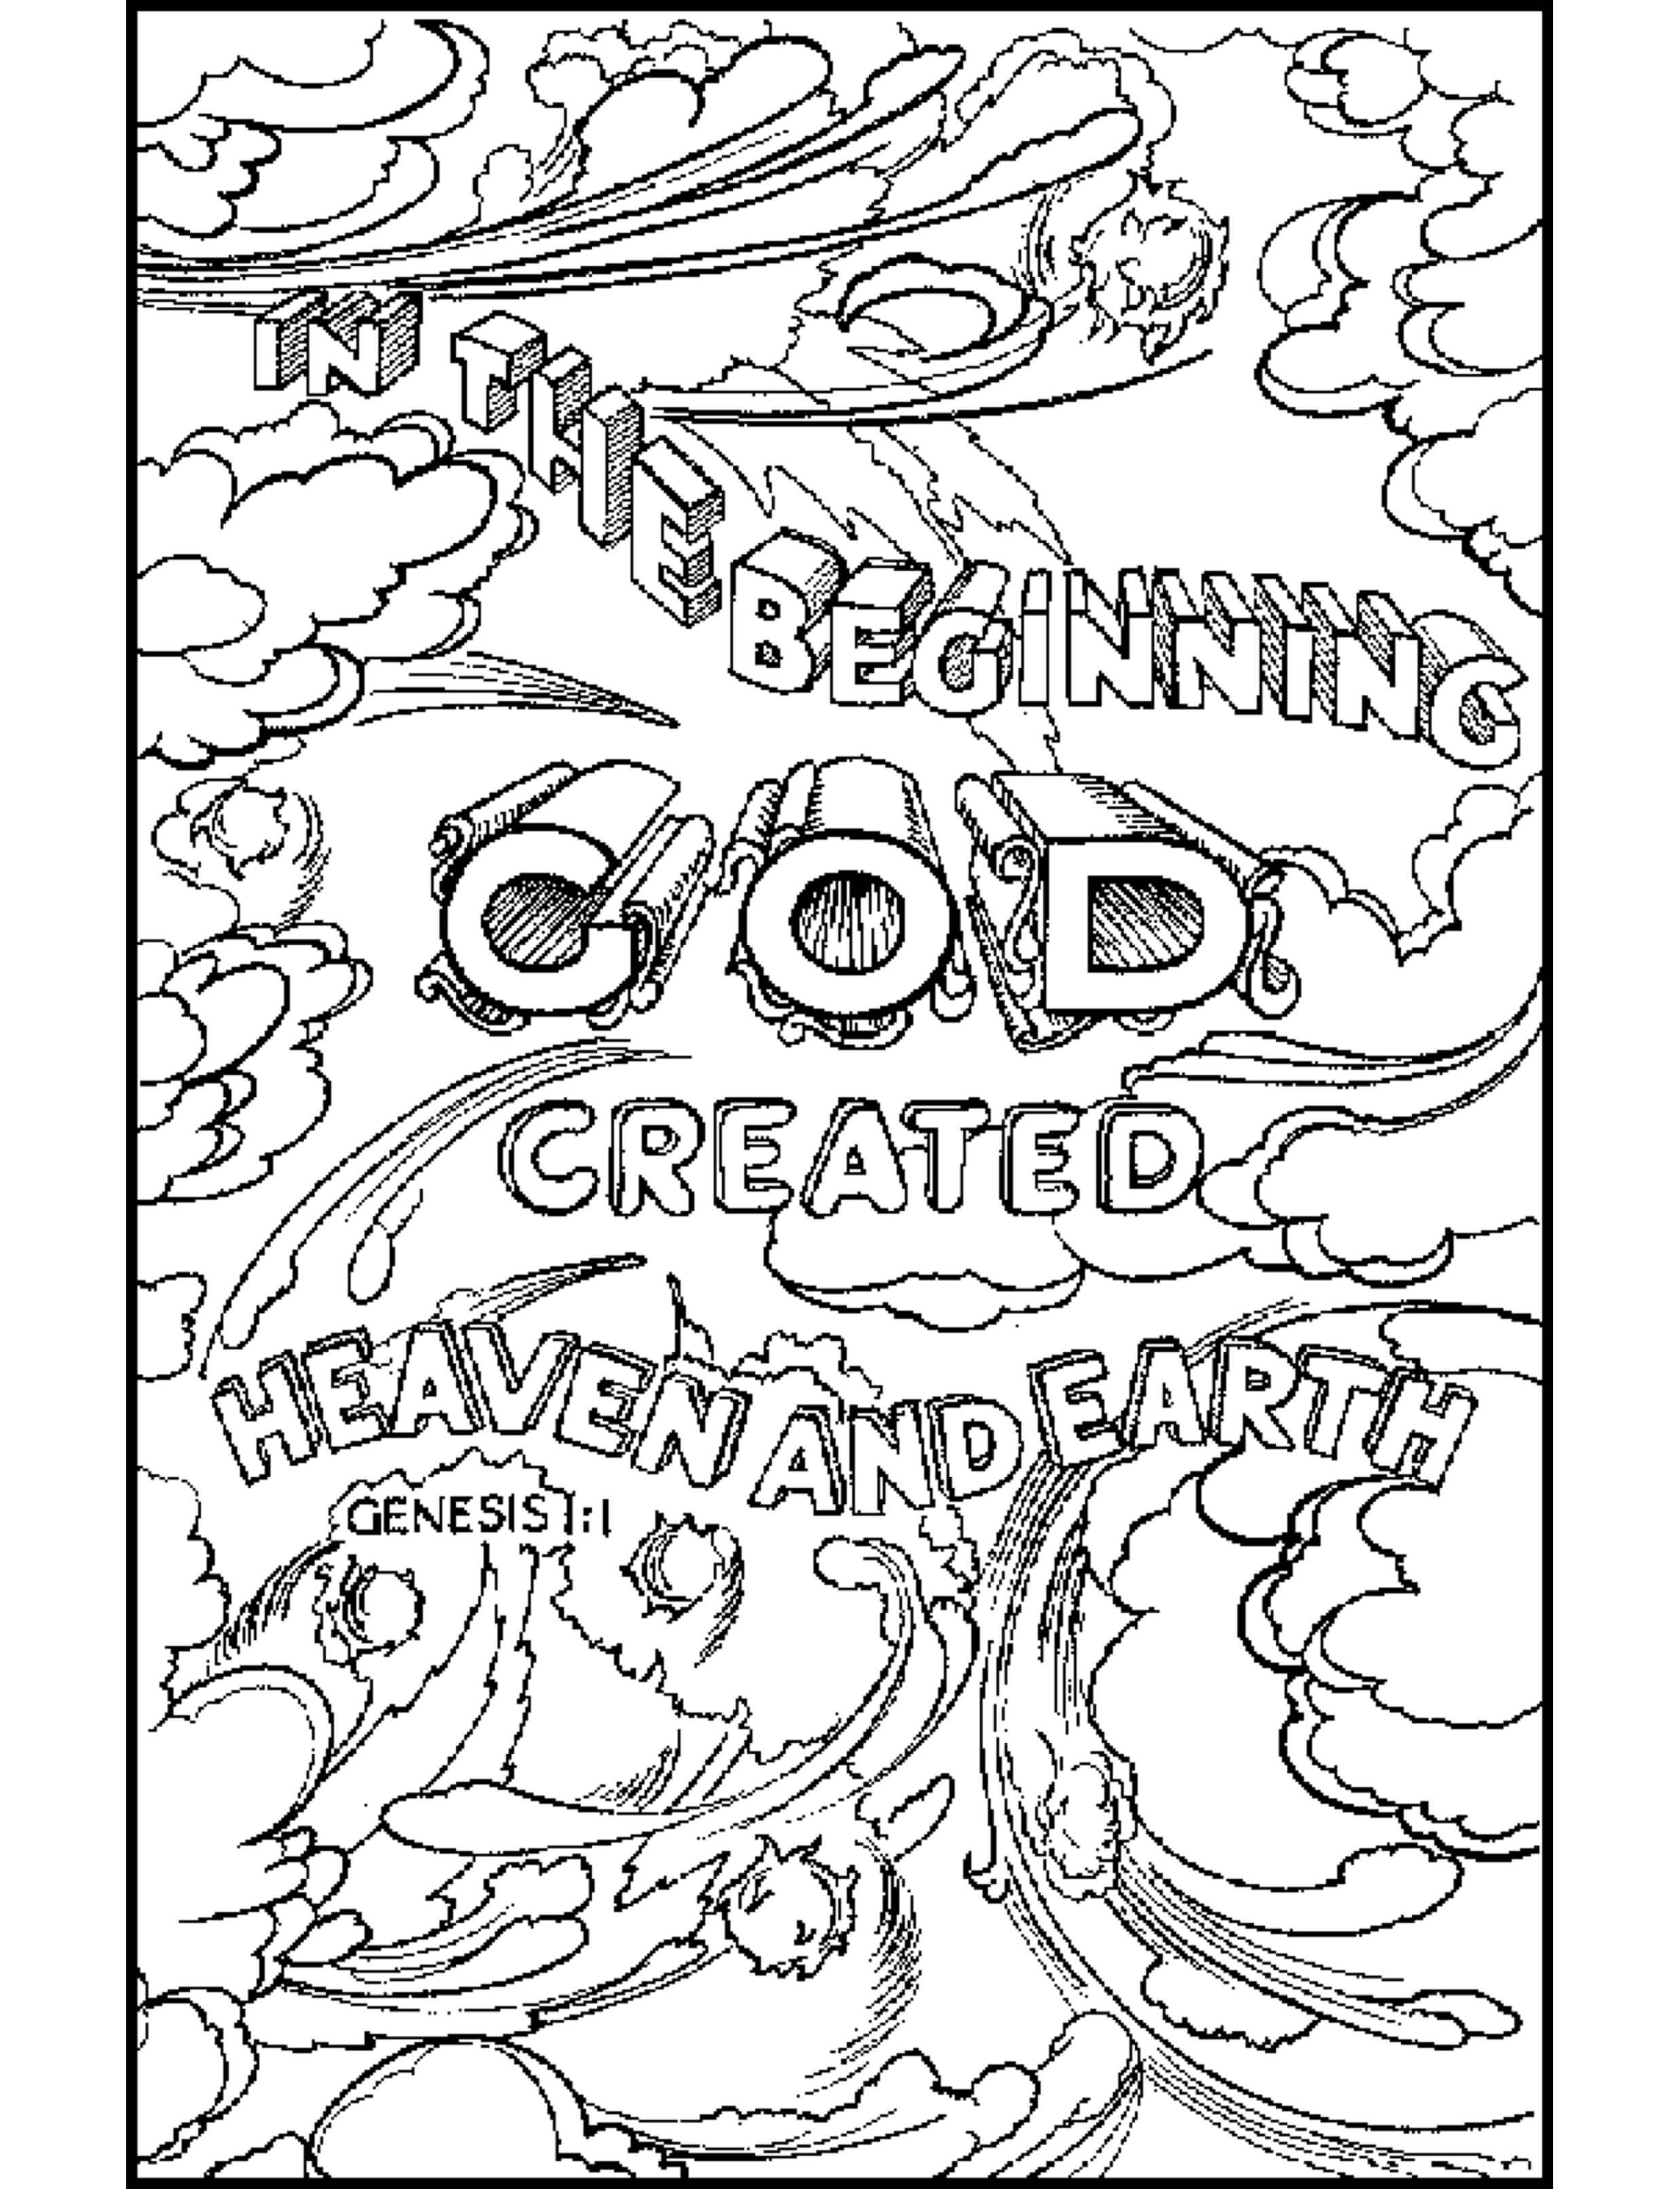 Free bible coloring pages – iconmaker.info